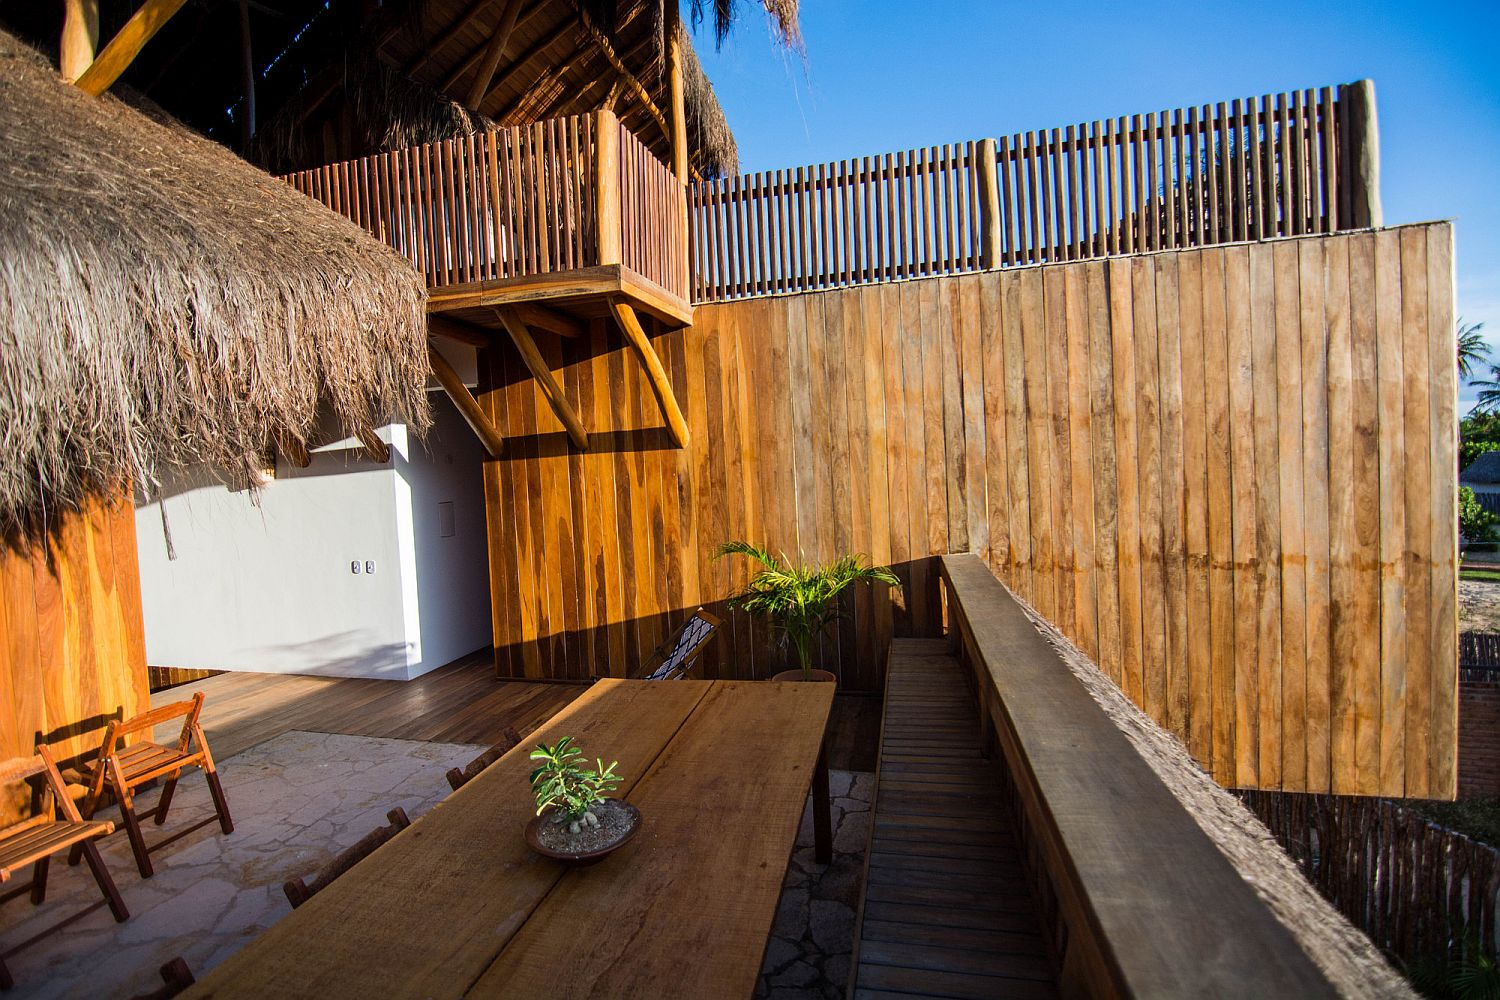 Deck of the house with custom wooden outdoor decor